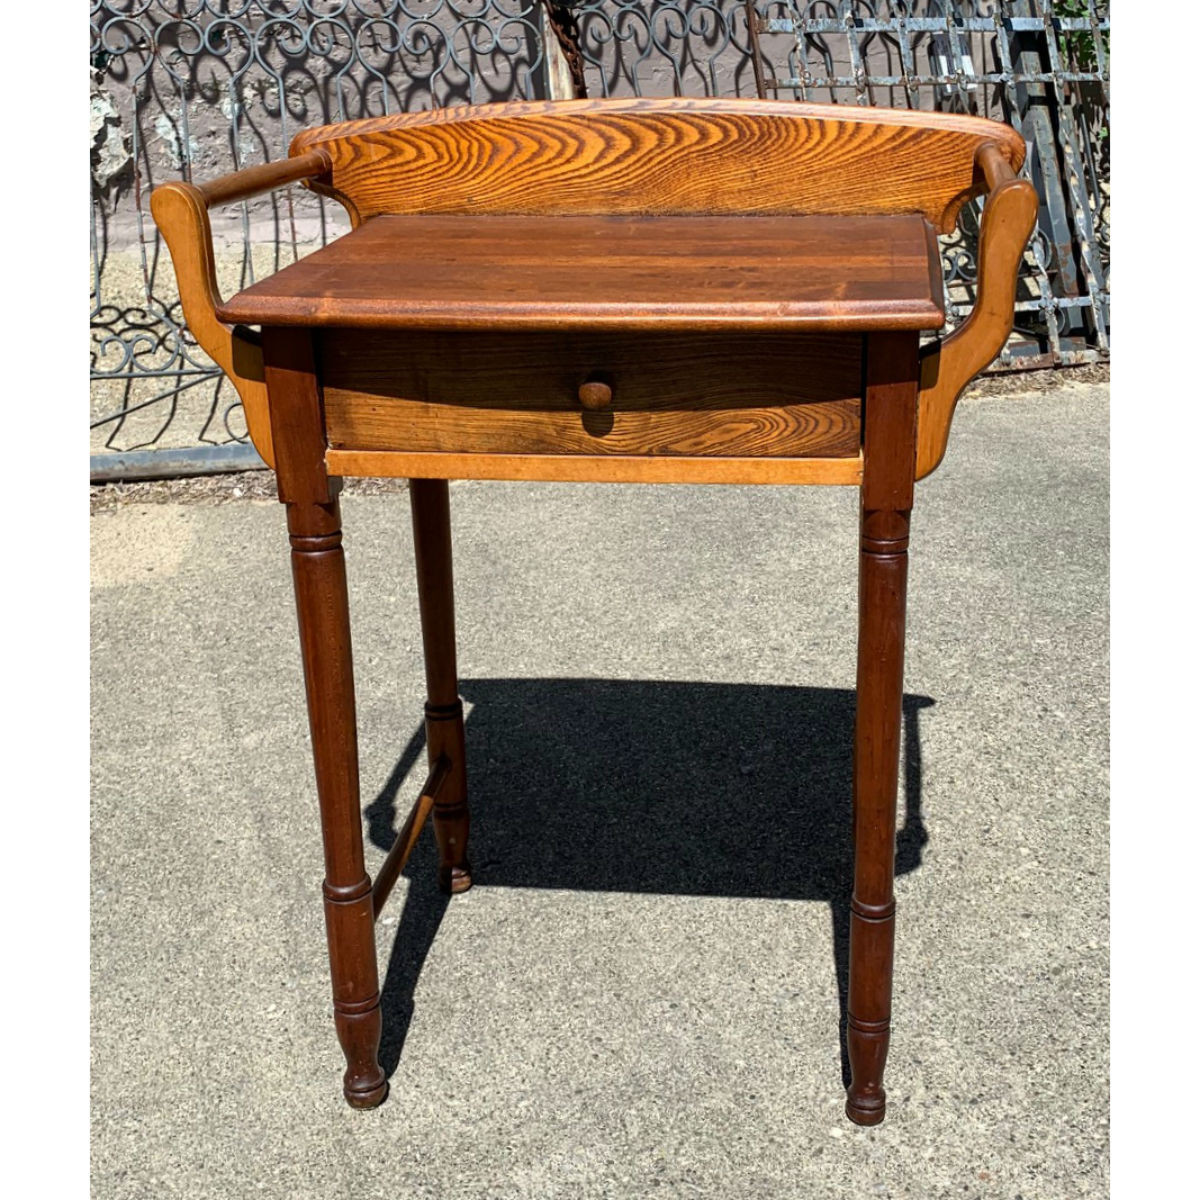 F20033 - Antique Late Victorian Washstand